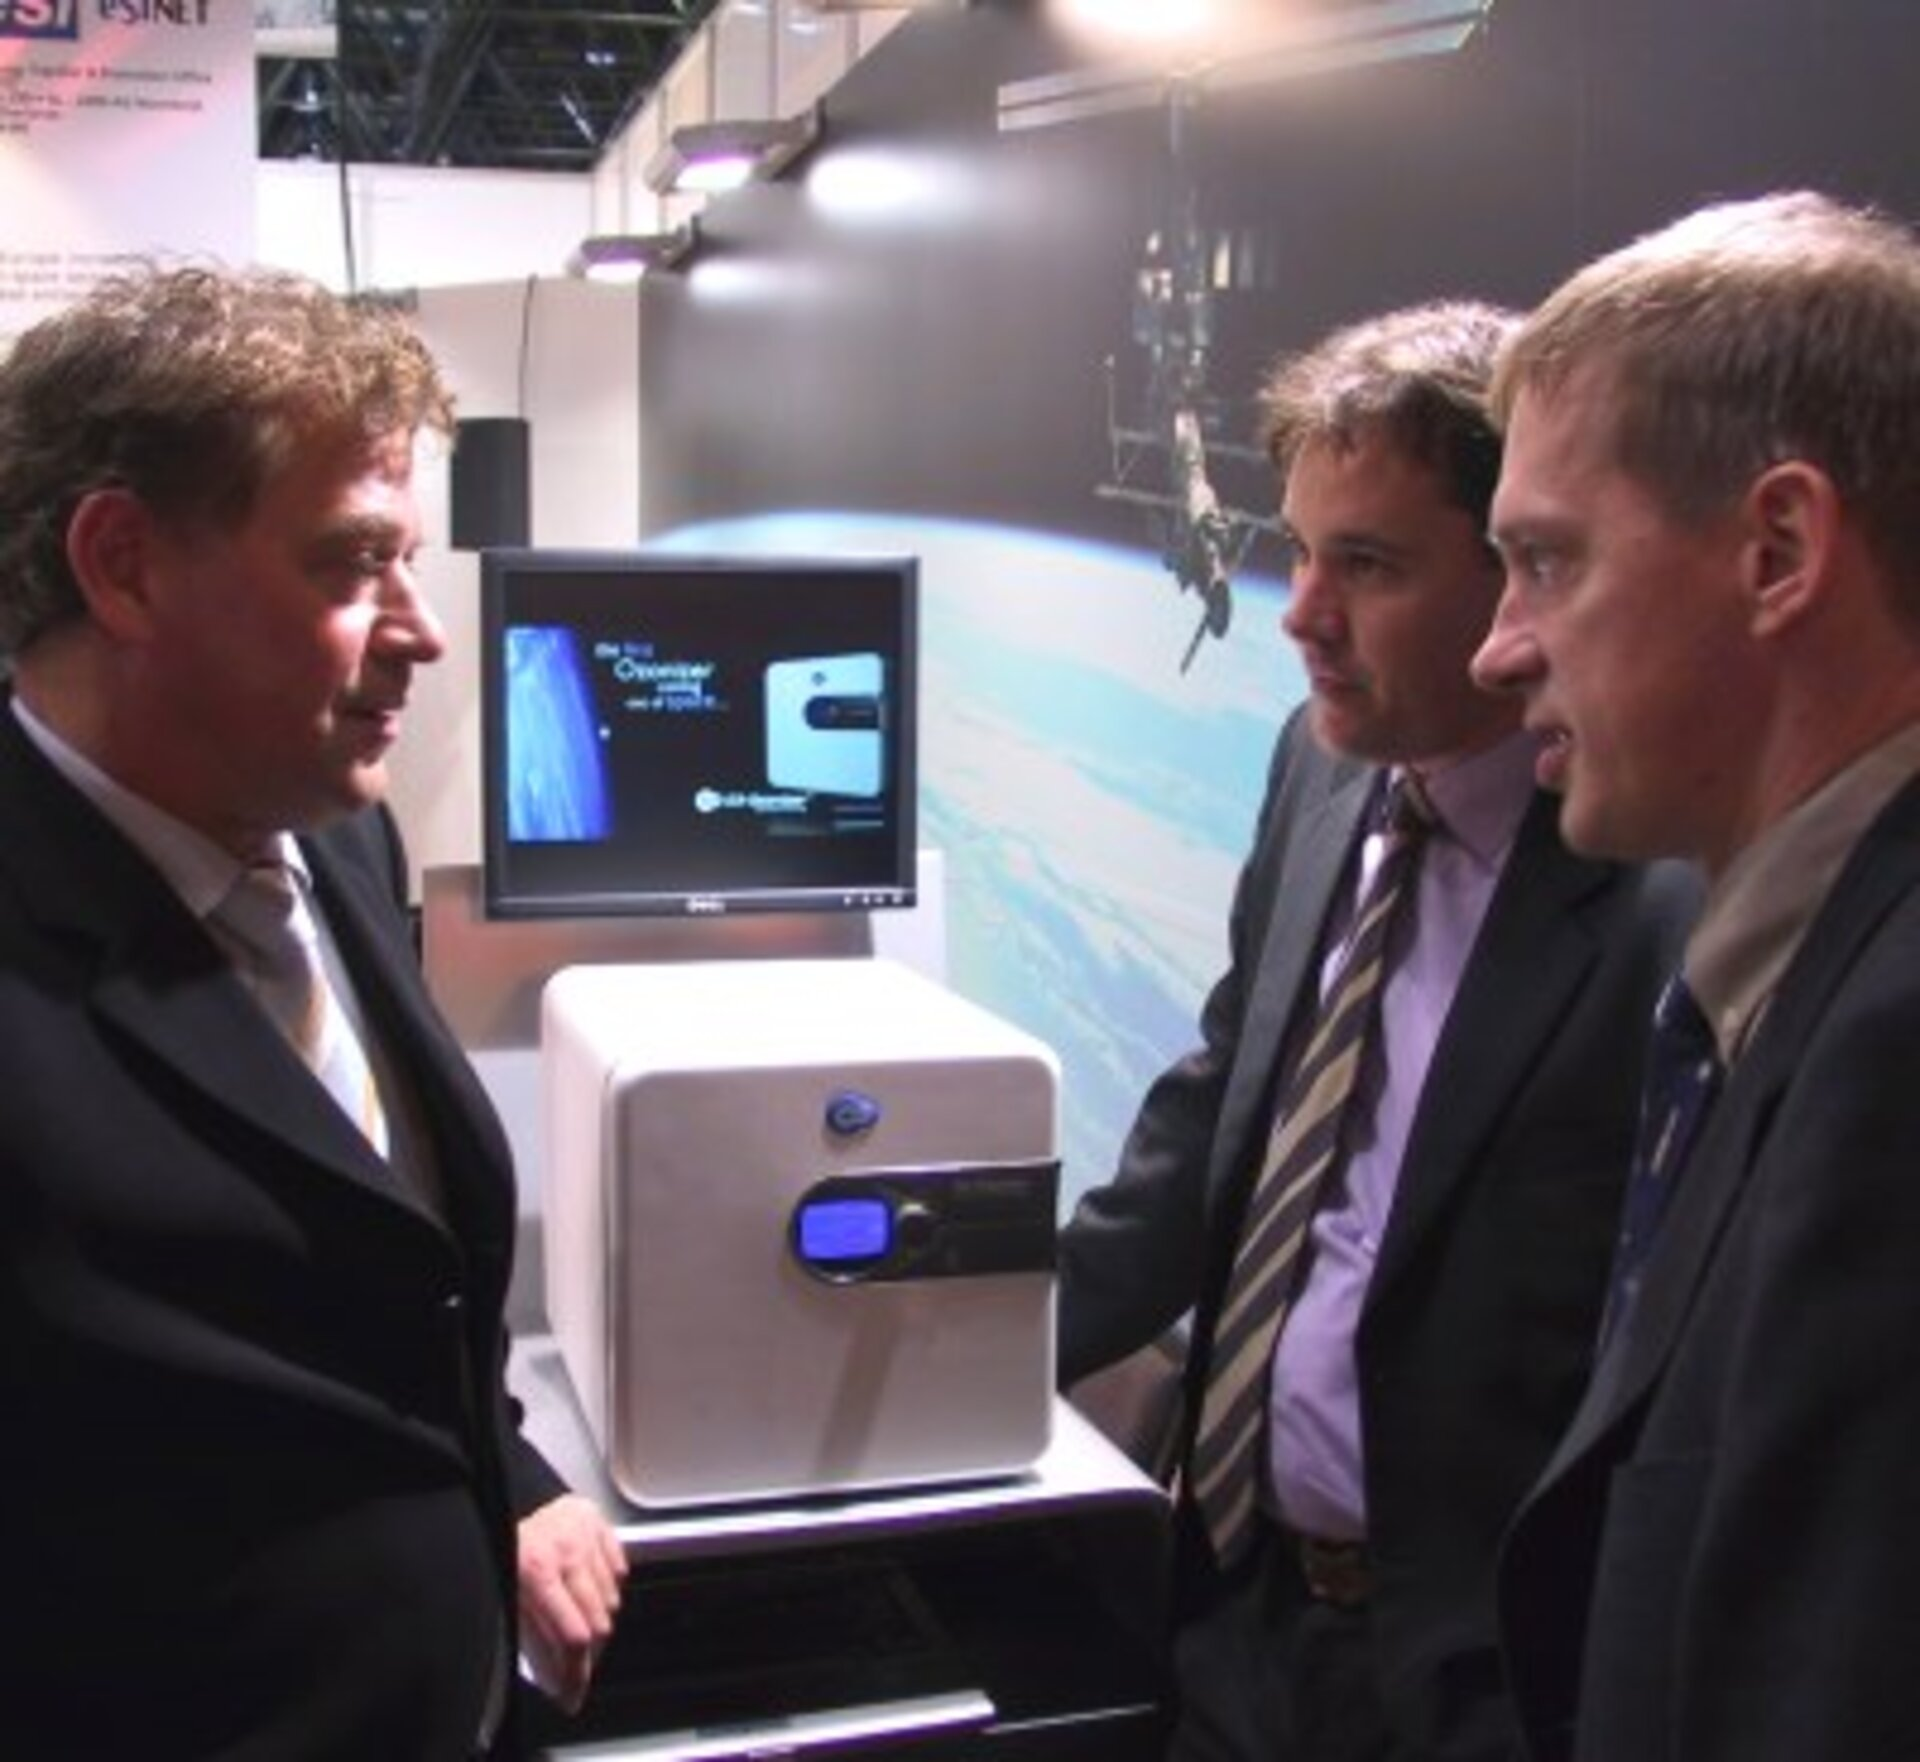 The O3-Ozonizer is presented at Medica 2005